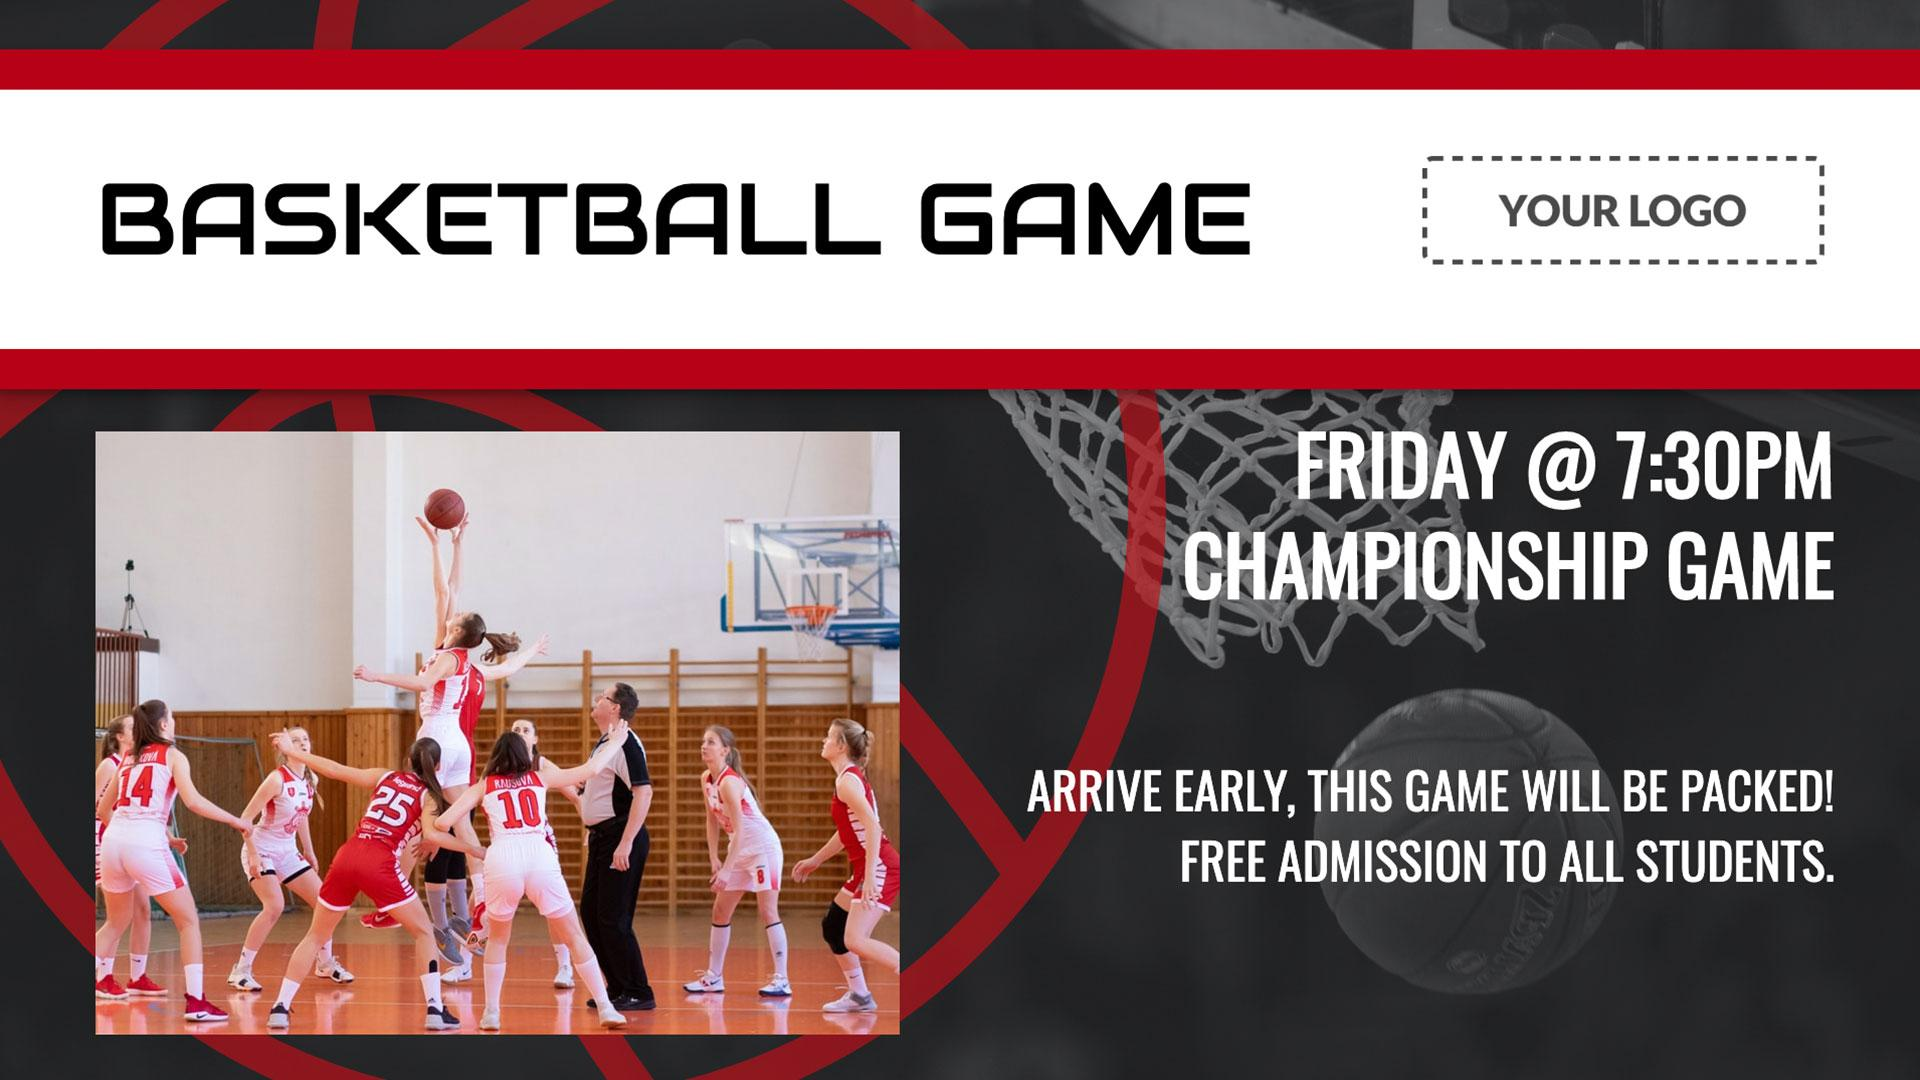 Basketball Game Digital Signage Template